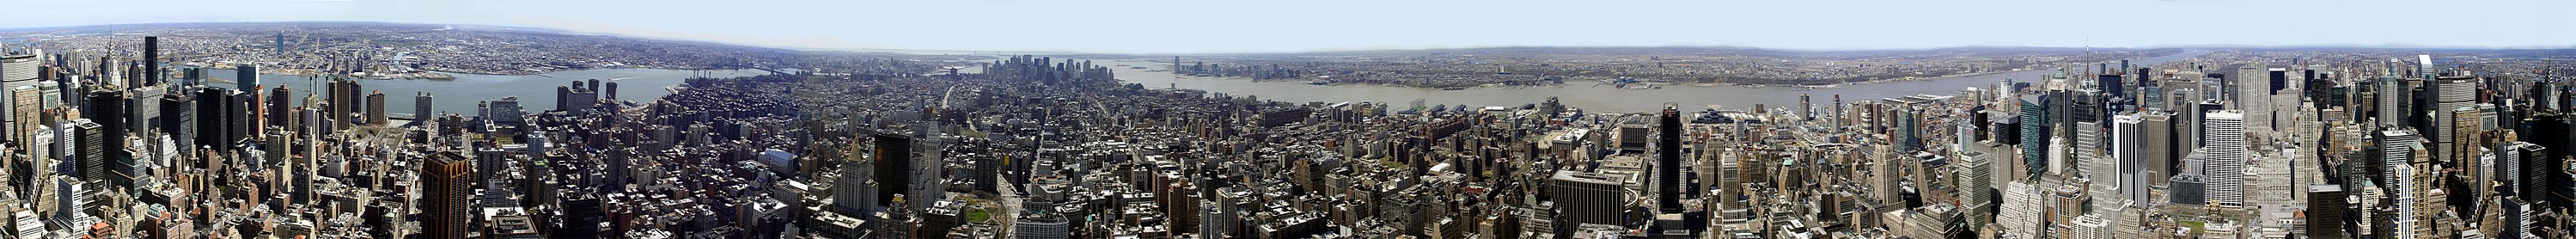 Sicht op New York fanút Empire State Building